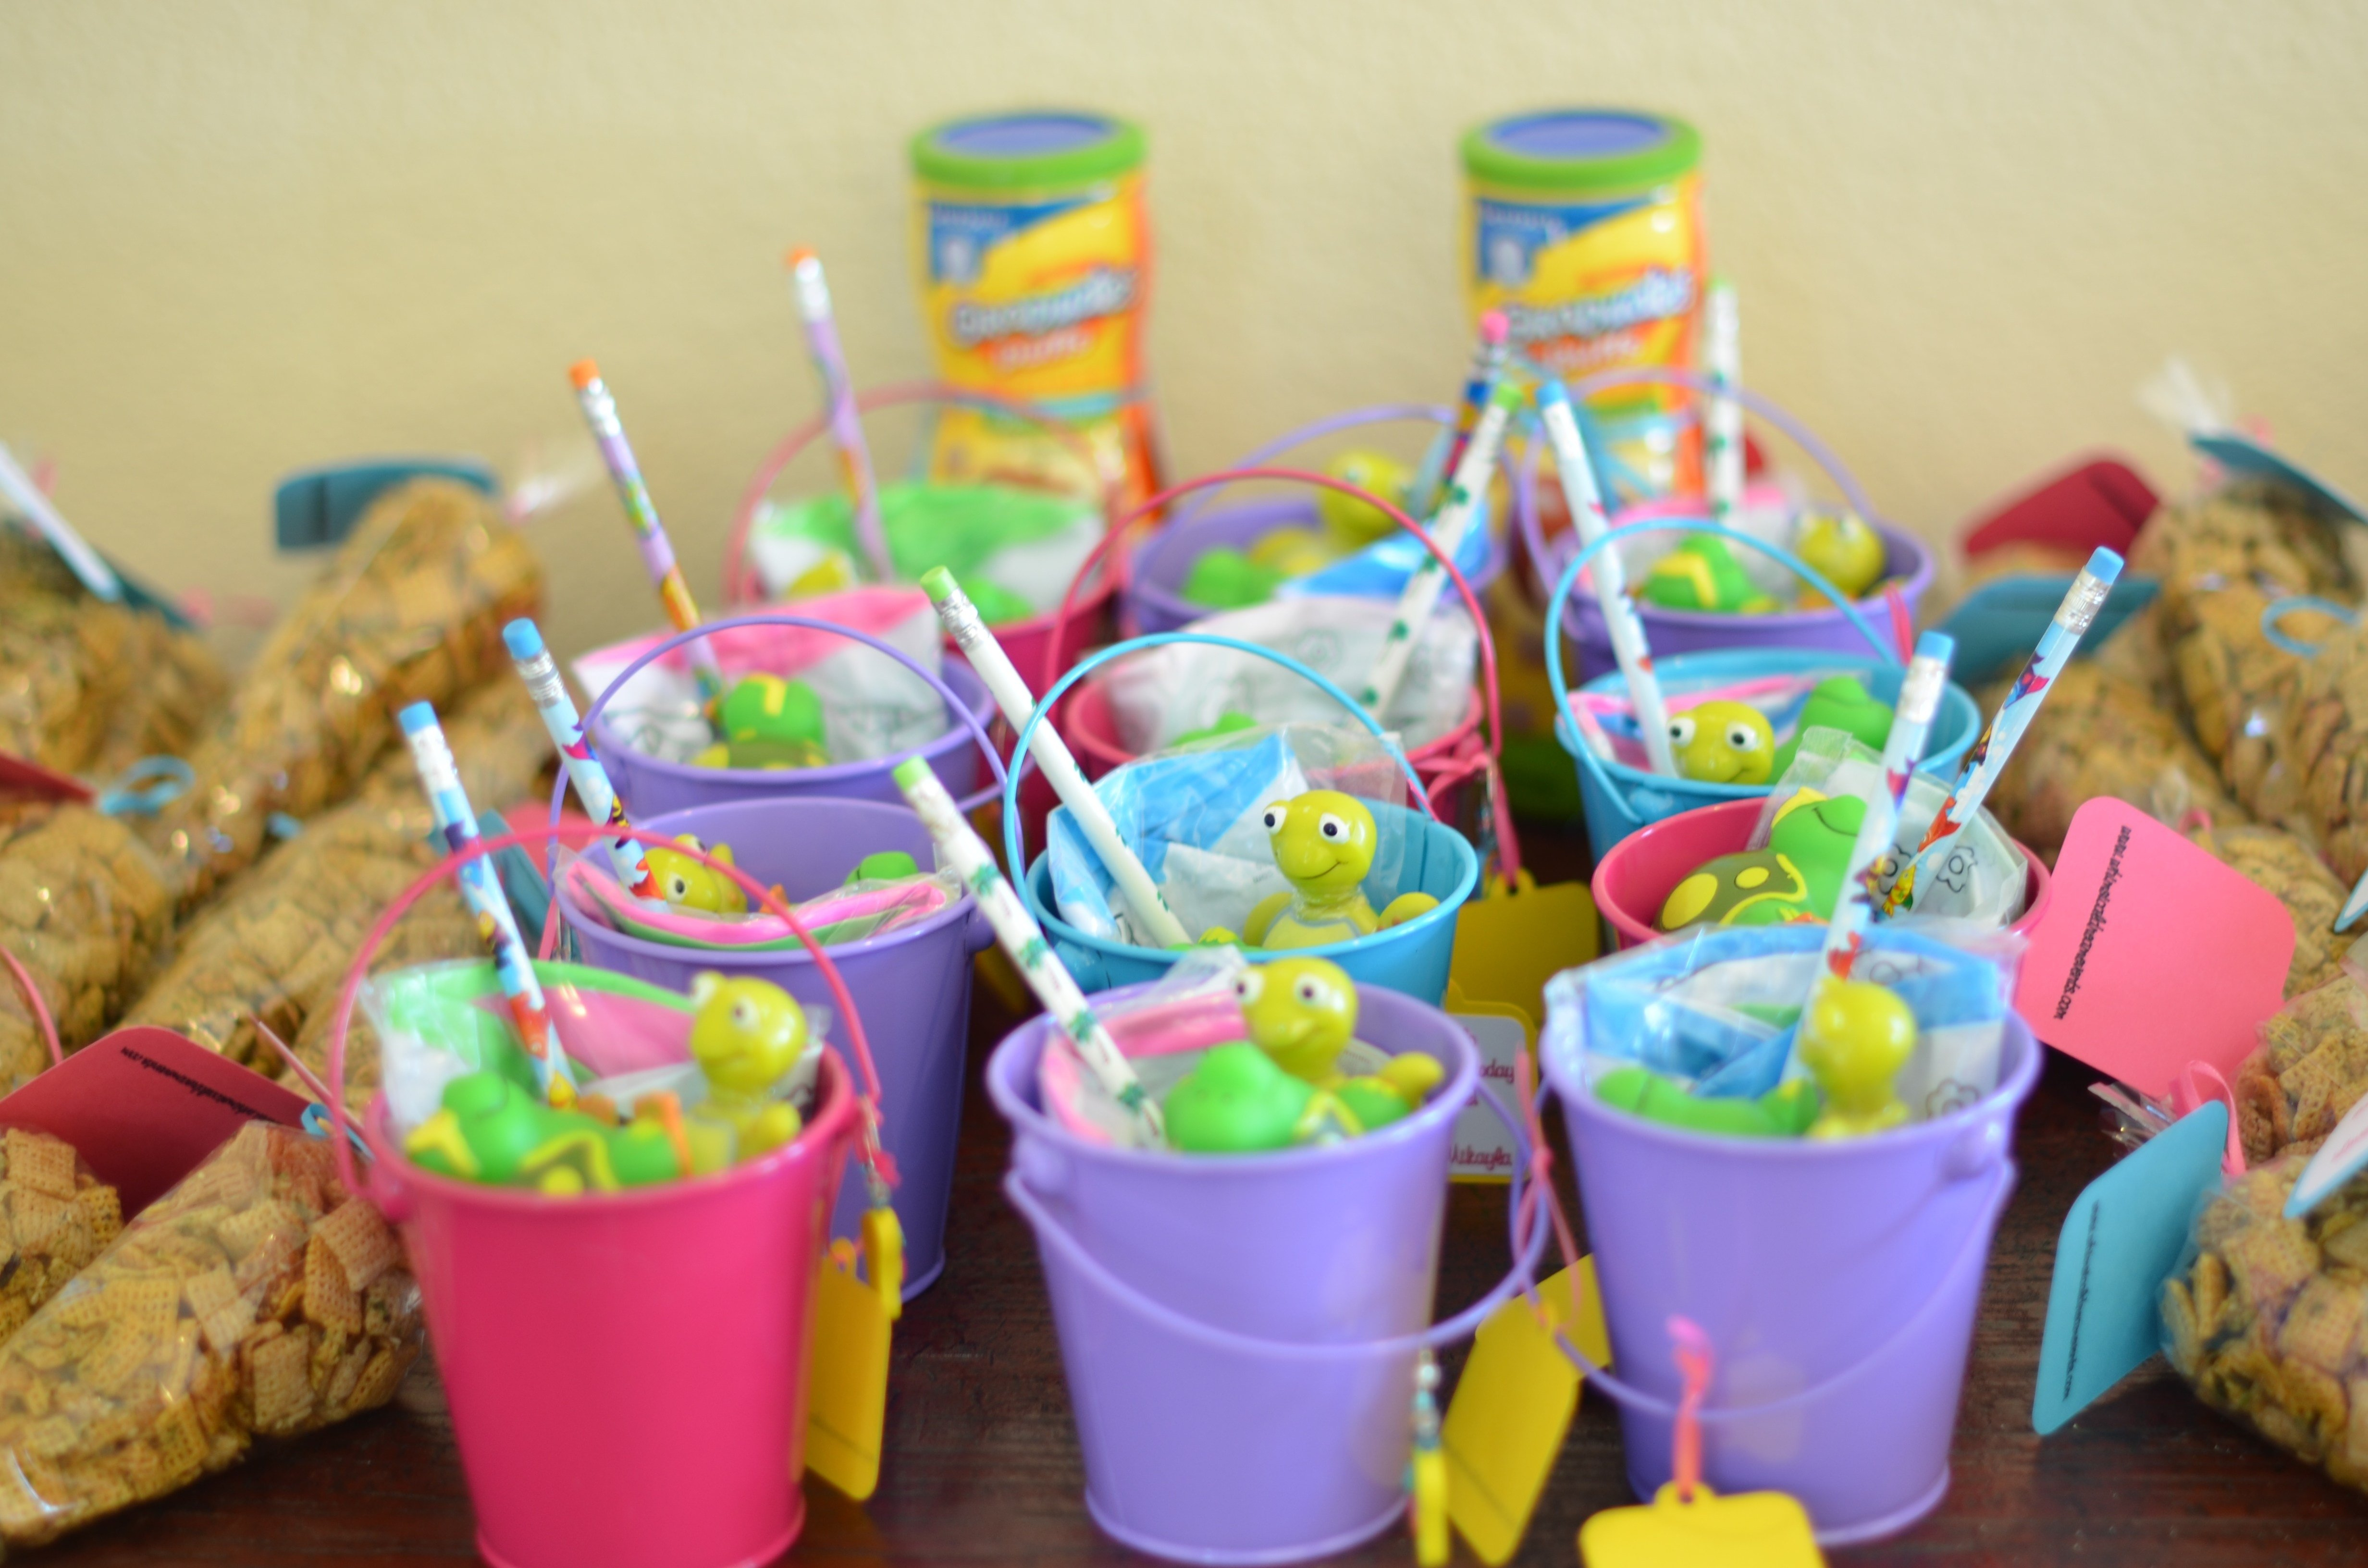 10 Cute Party Favors Ideas For Kids reputable a as wells as diy party favor variety kit diy party favor 2020